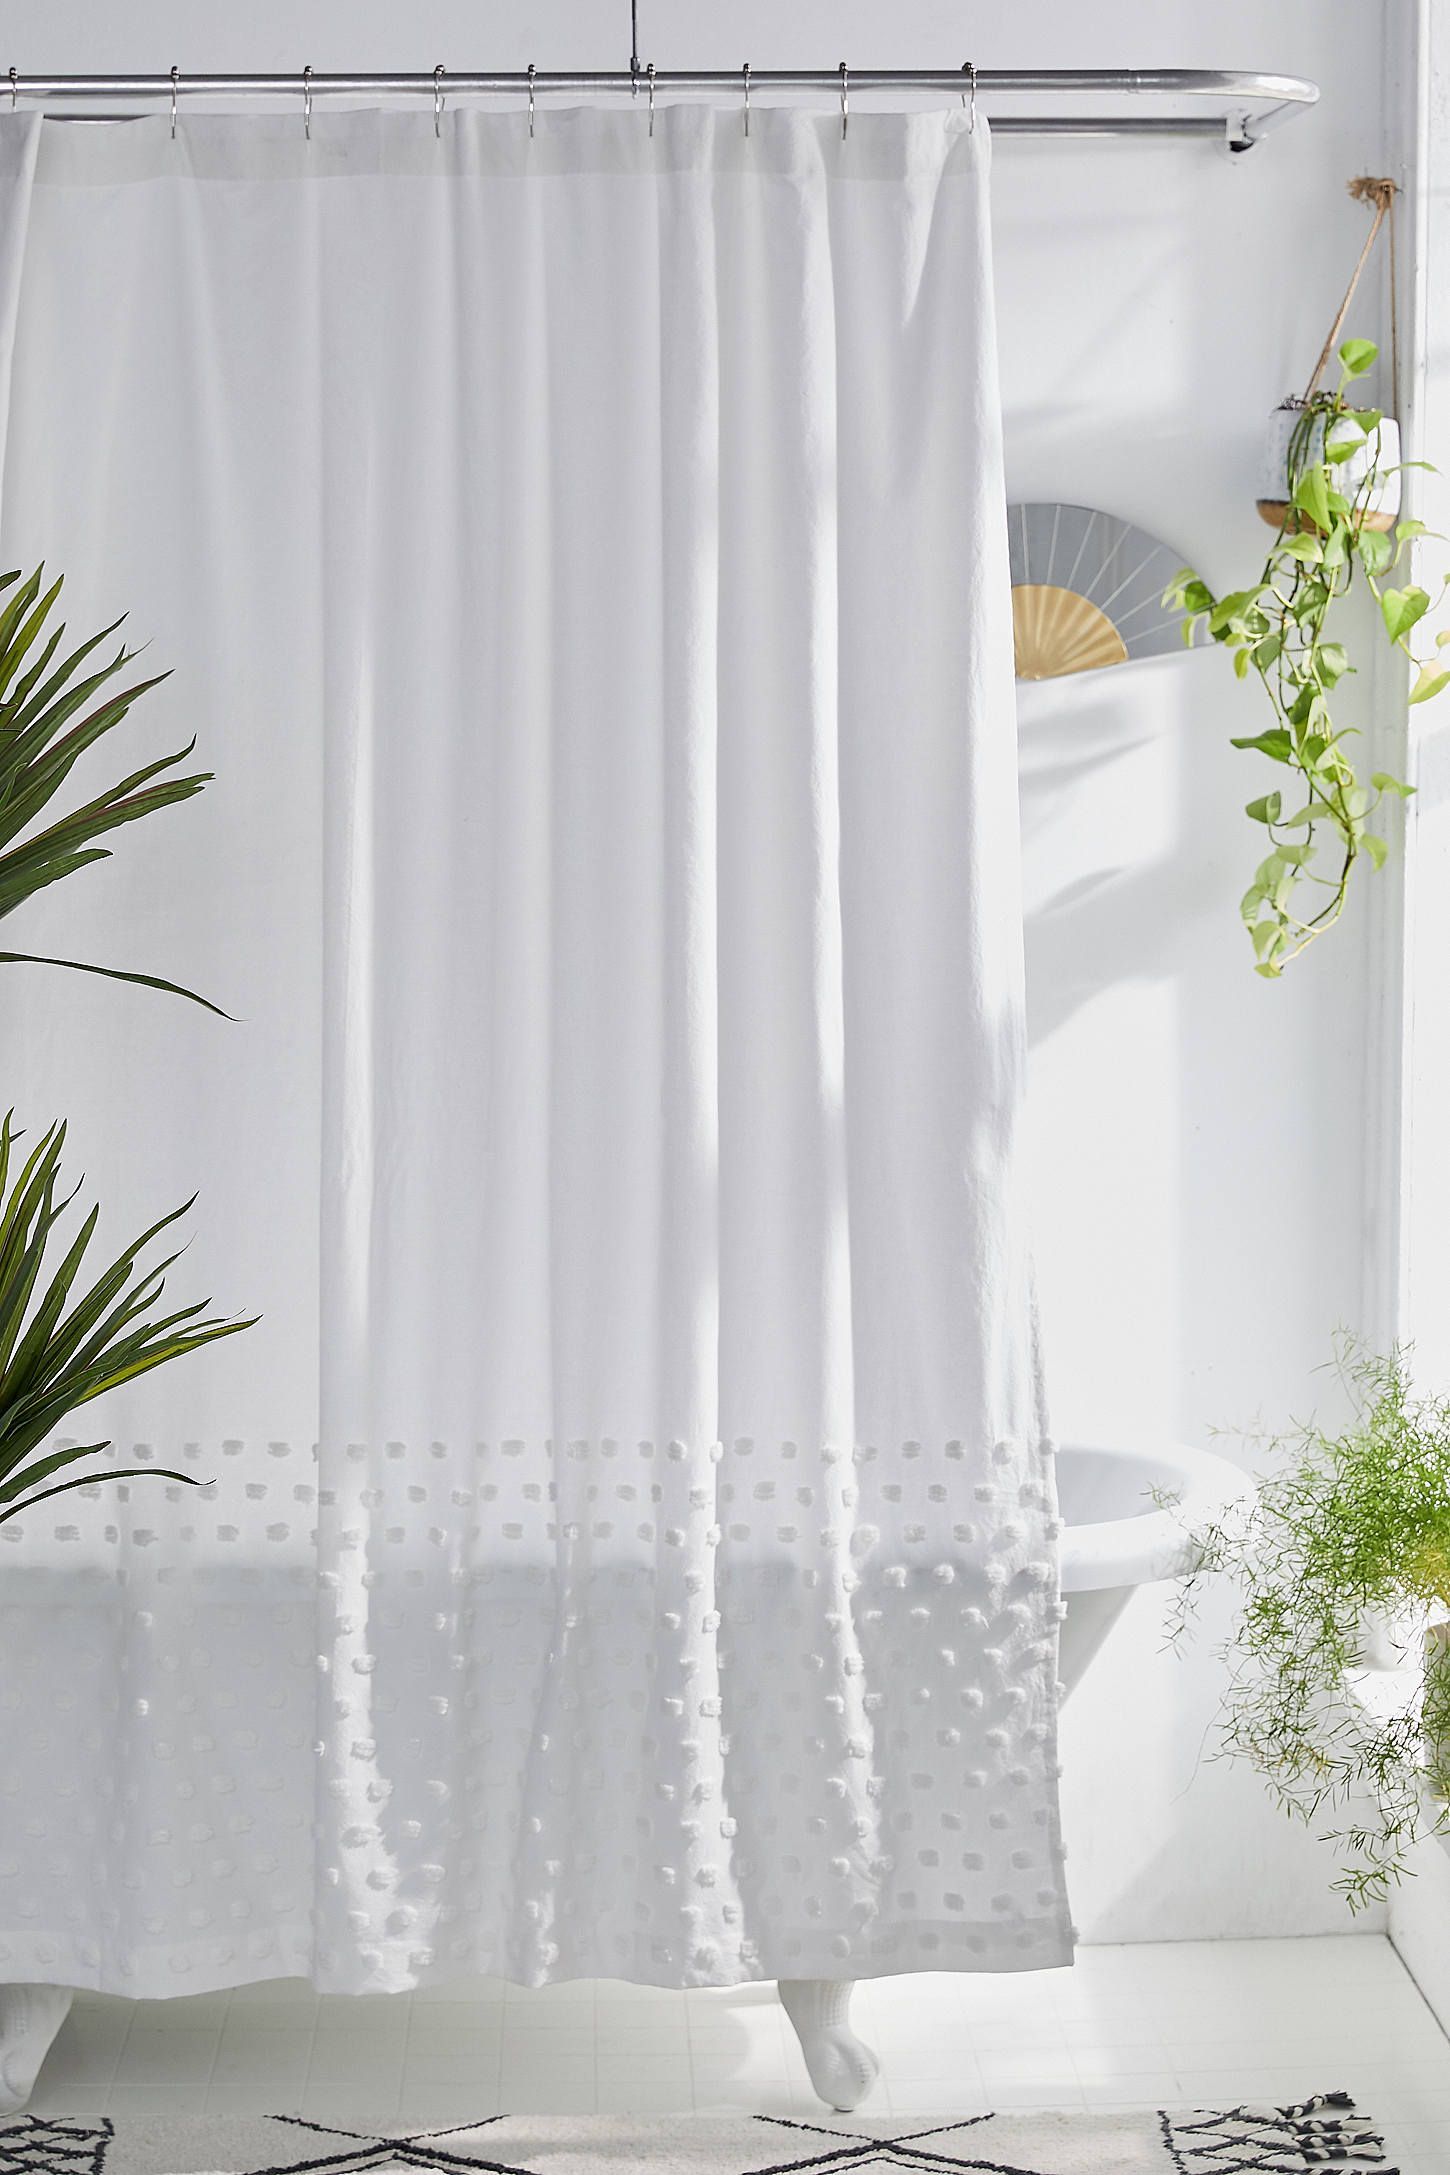 Tufted Dot Shower Curtain White Shower Curtain Shower Curtain